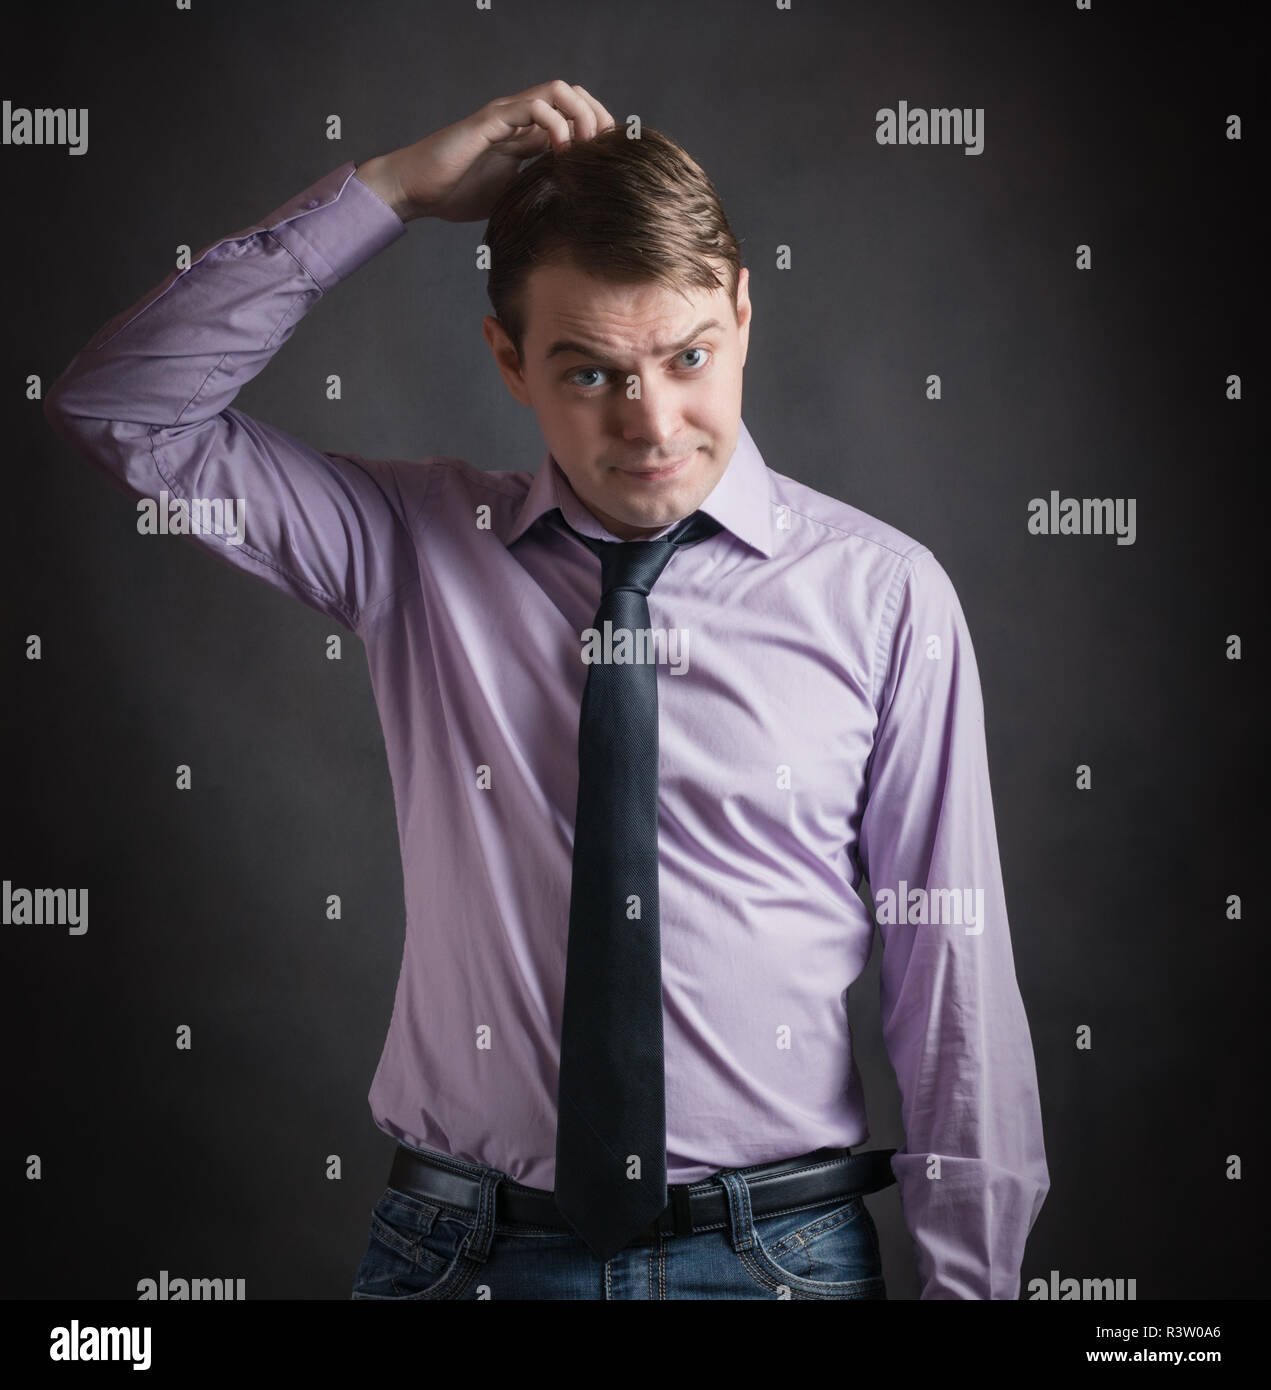 5eb57ffc Portrait of pensive young man in pink shirt and dark tie, against dark  background.